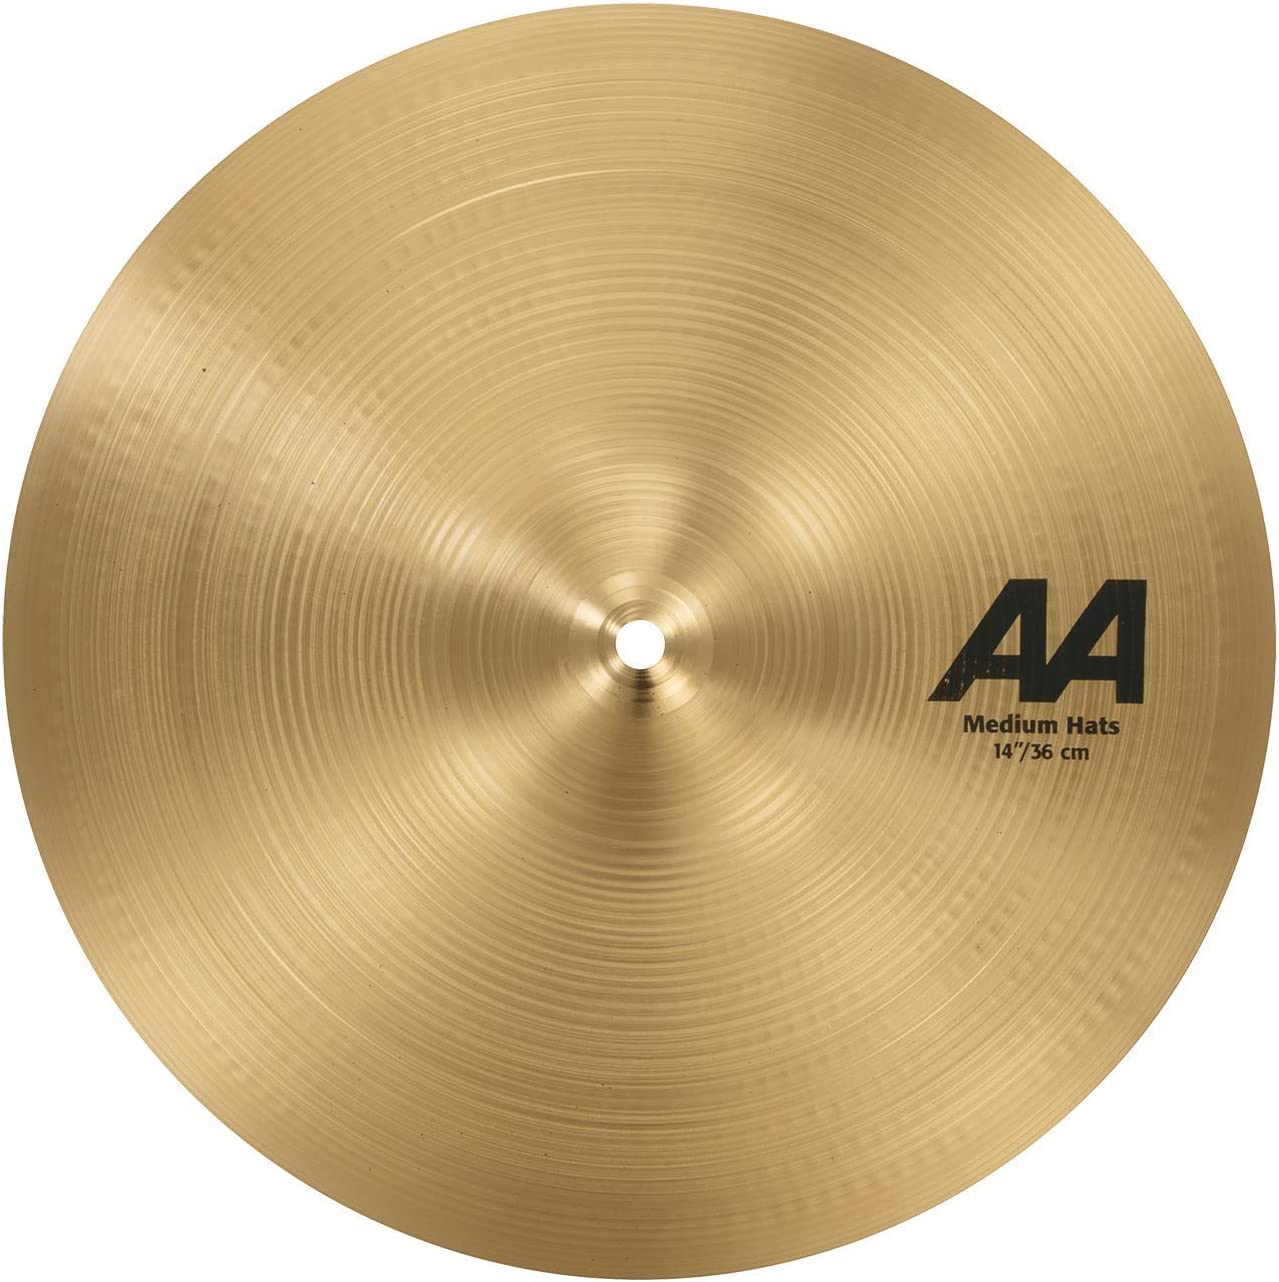 Sabian 14-Inch AA Regular Hats Cymbal